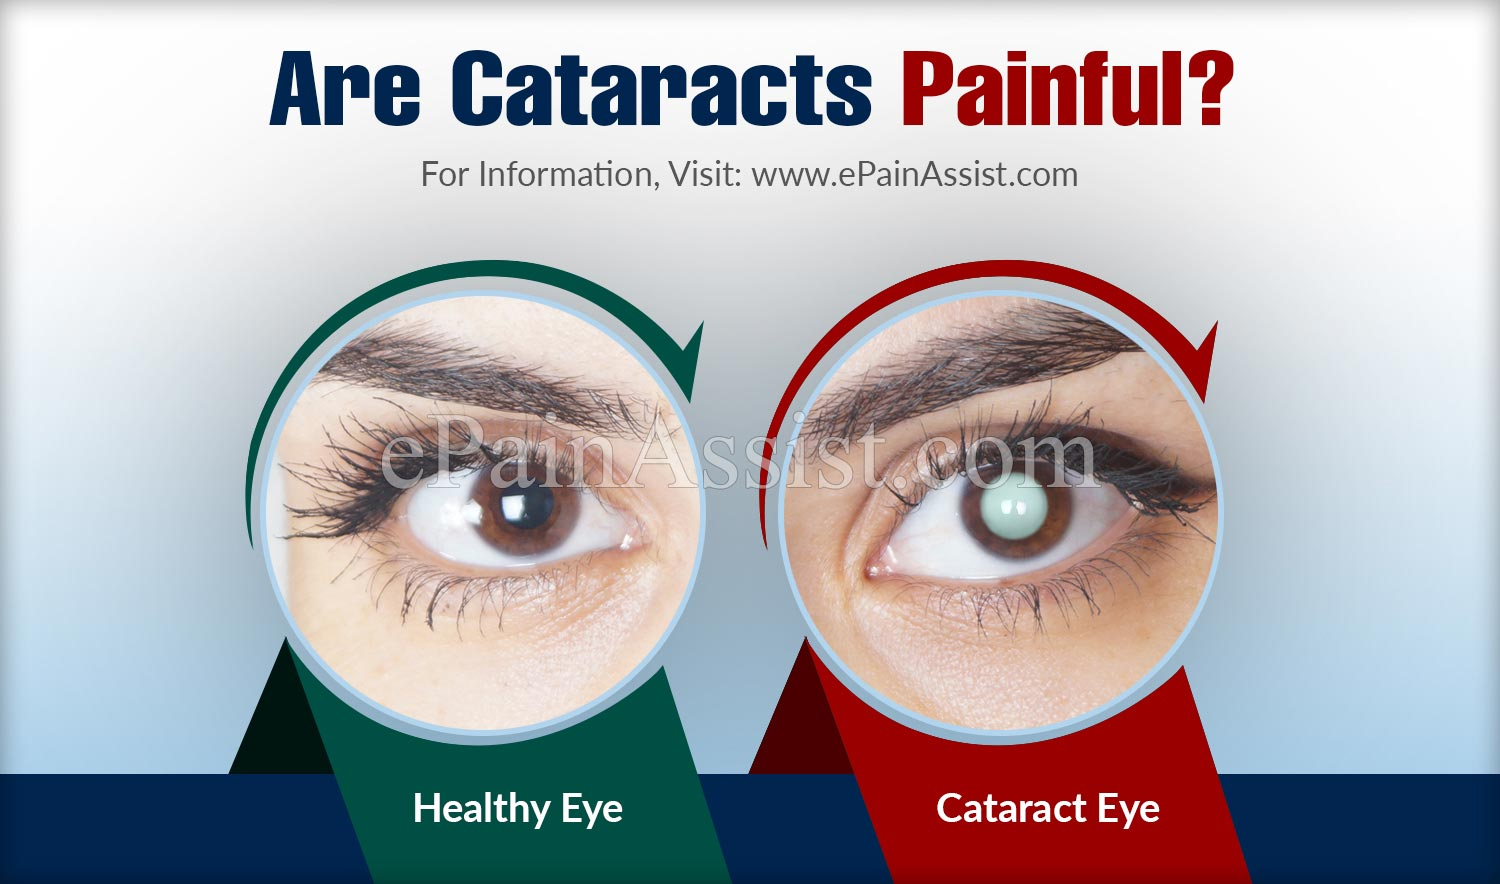 Are Cataracts Painful?